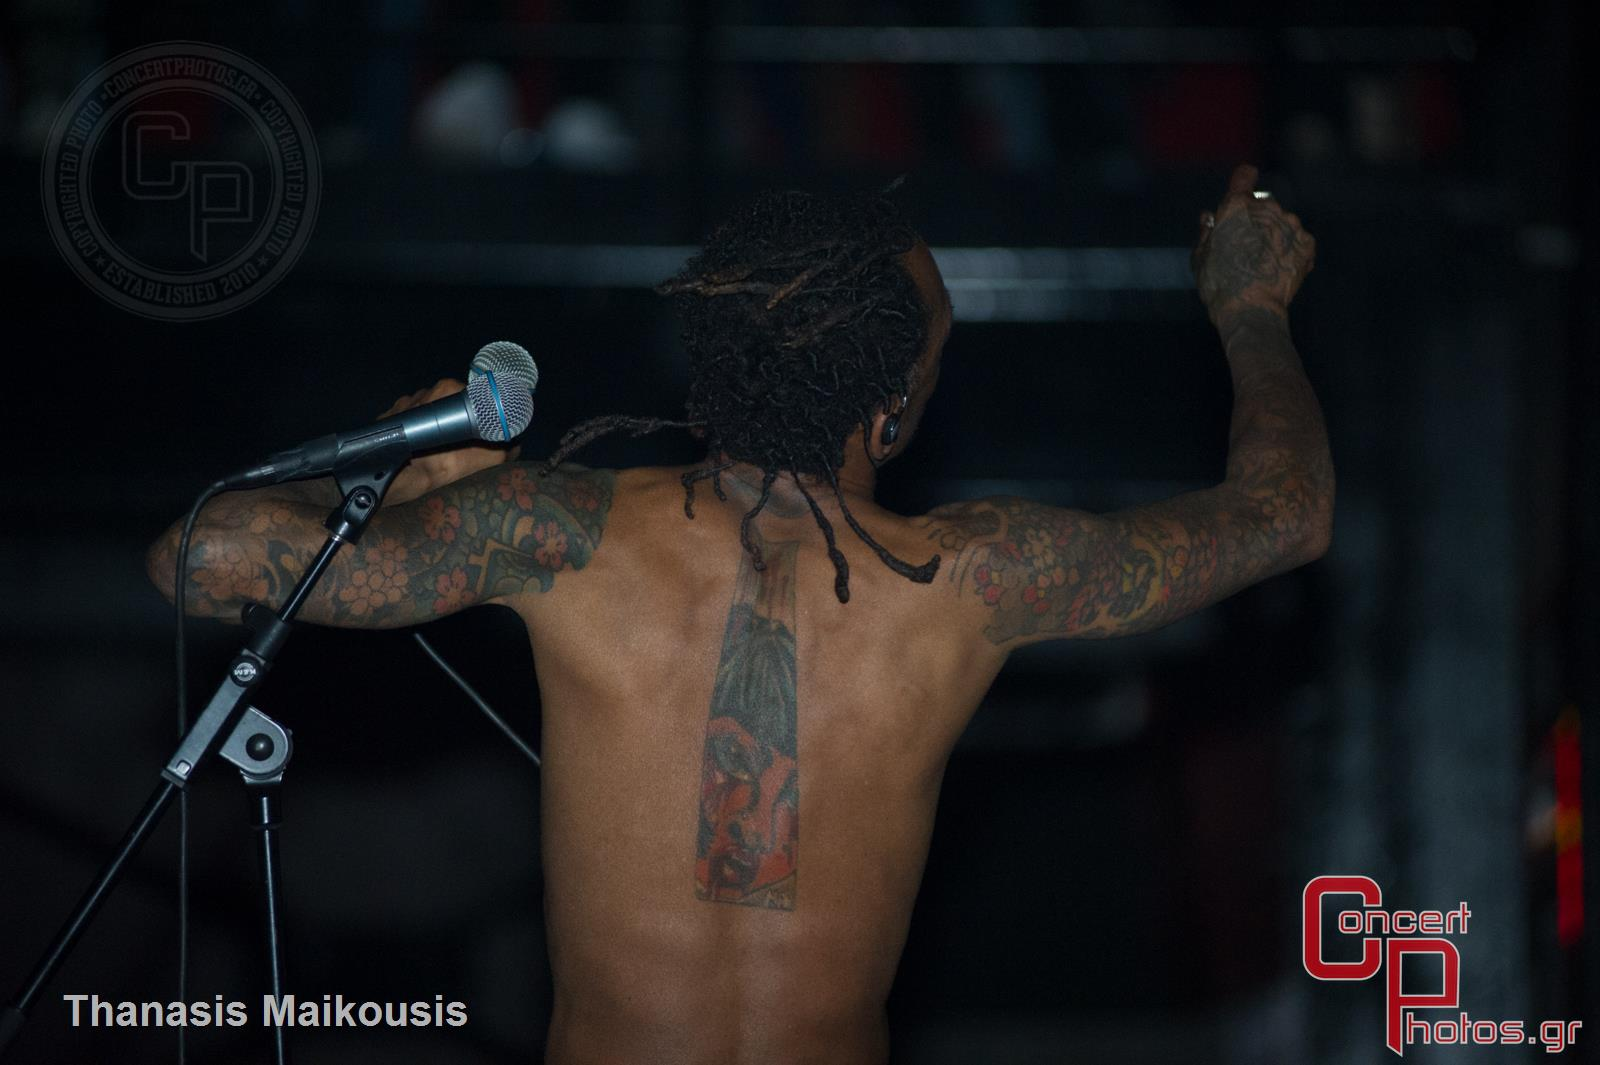 Tricky - Spectralfire-Tricky - Spectralfire photographer: Thanasis Maikousis - concertphotos_-4039